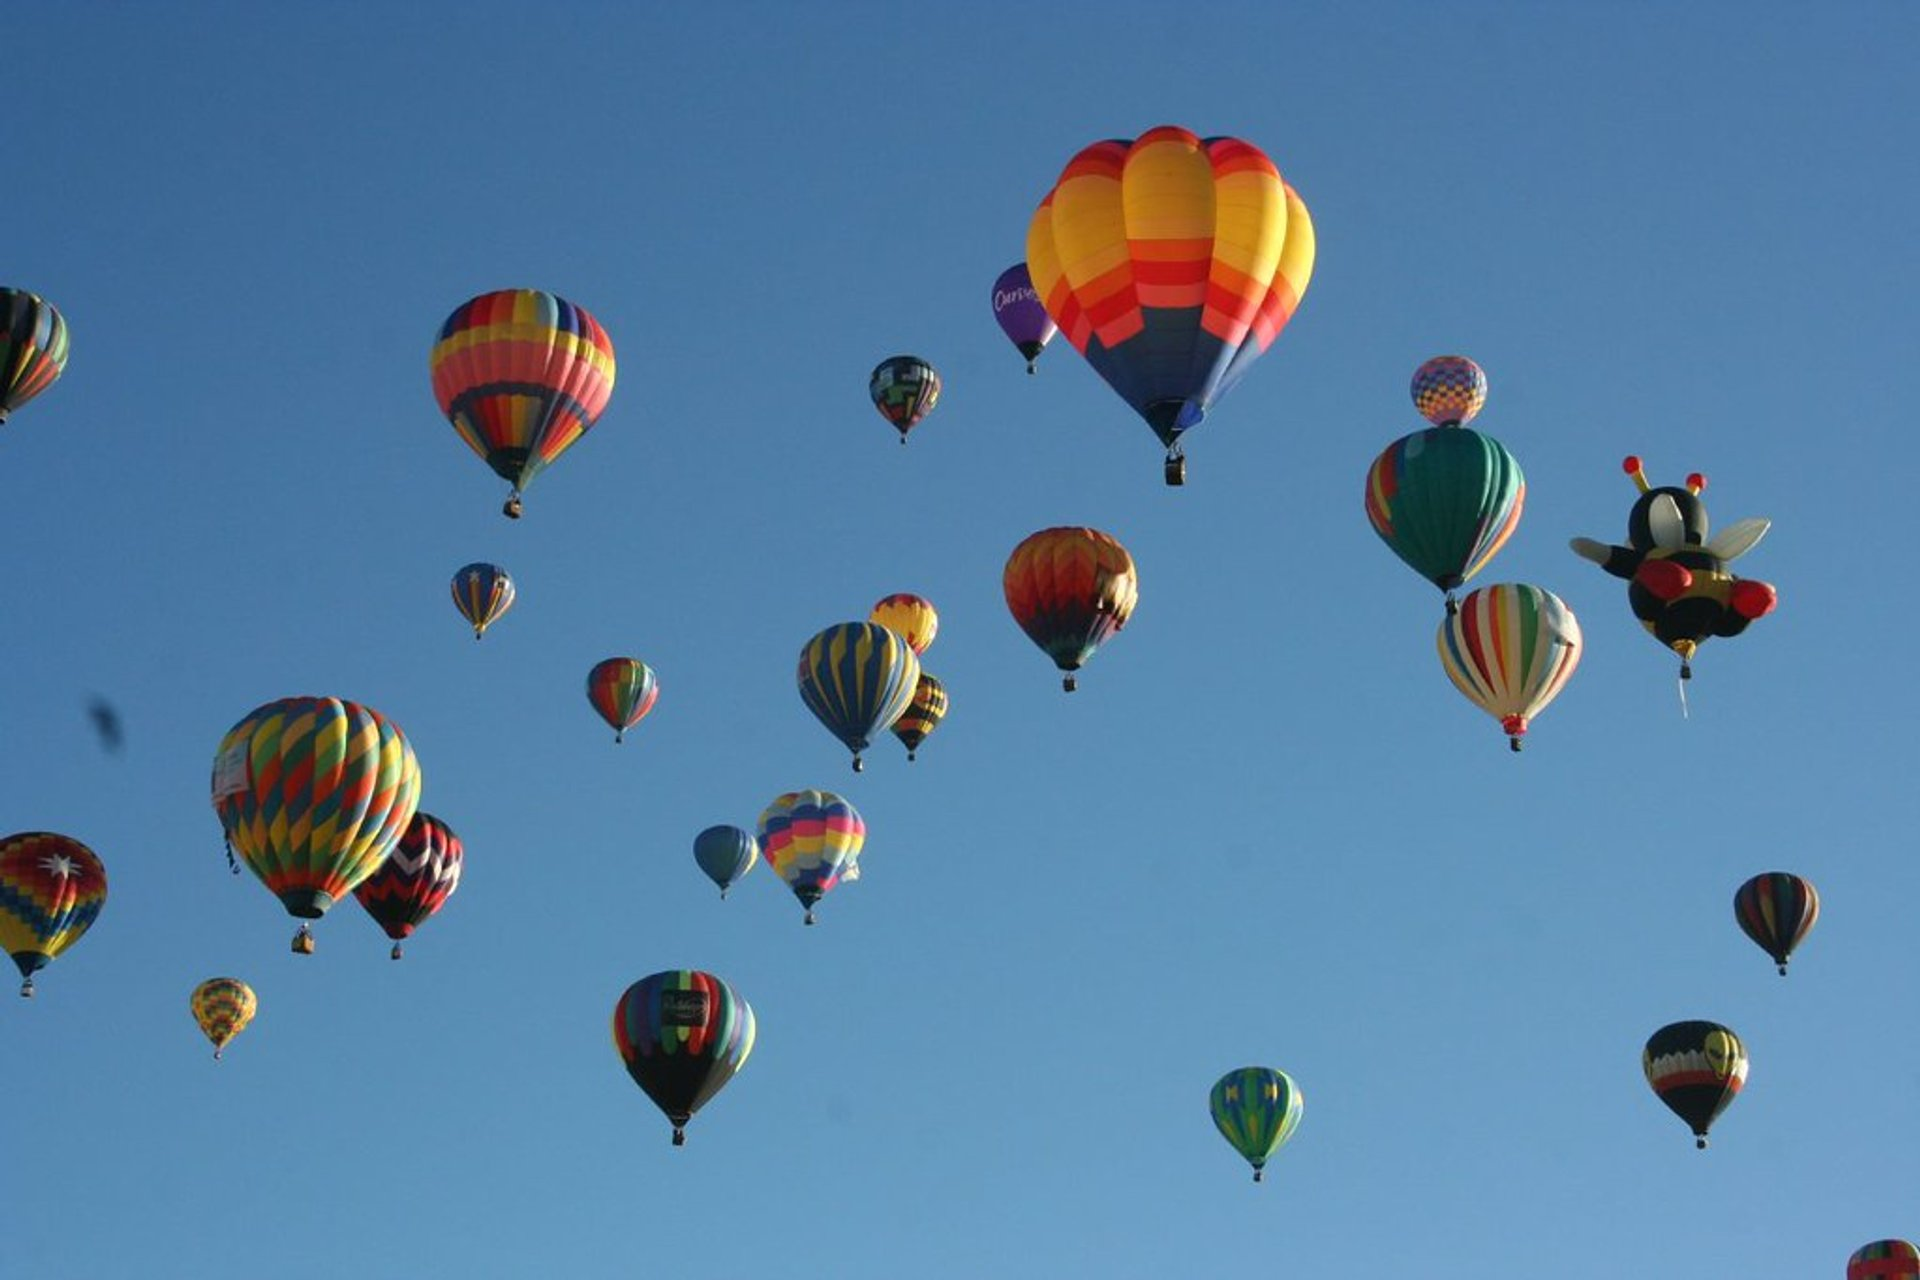 Best time for The Great Reno Balloon Race in Nevada 2020